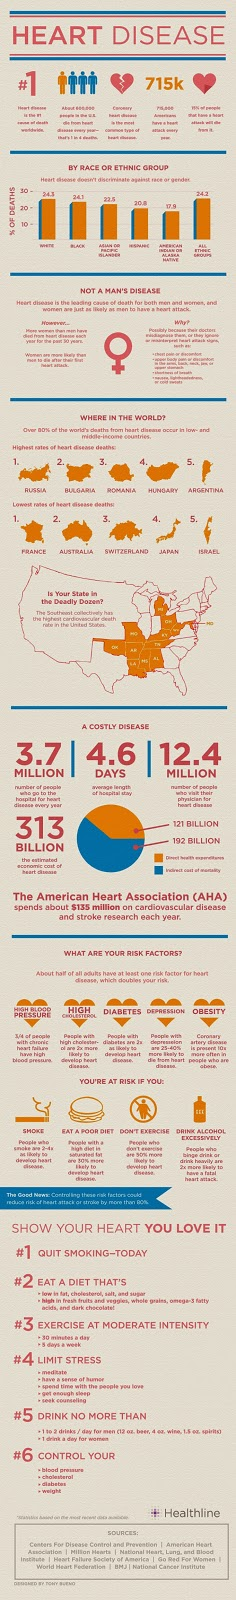 Heart Disease by the Numbers- Facts, Statistics, and You